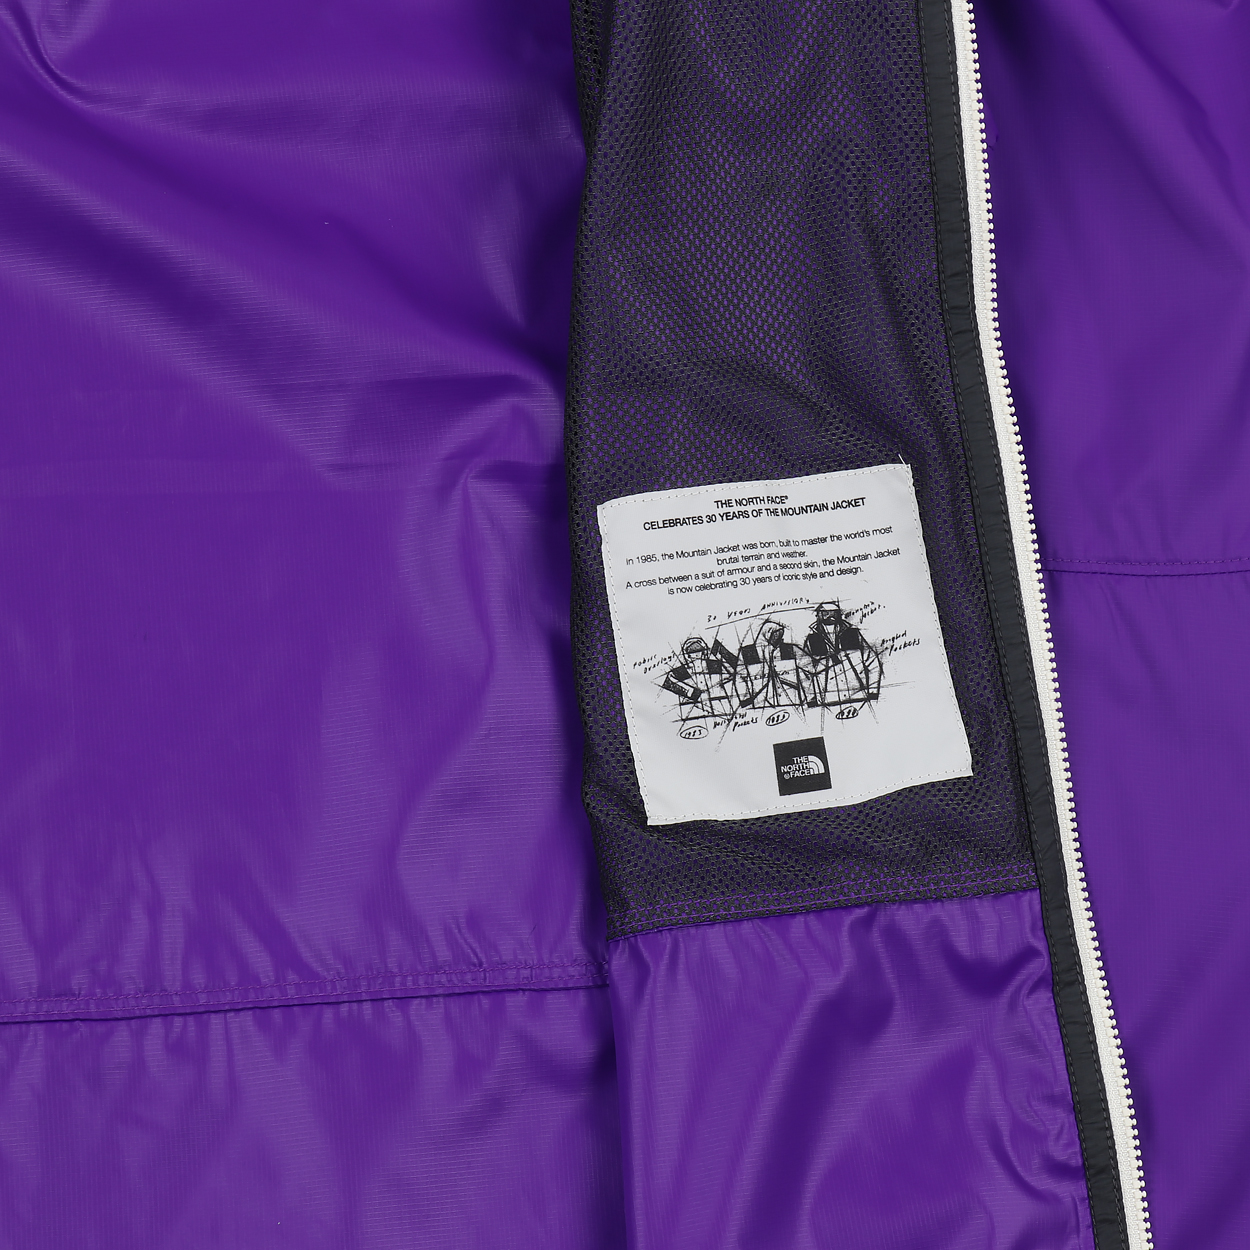 444423cab92b Lightweight WindWall technology protects you from seasonal wind and rain.  It features a Durable Water Repellent finish and comes from TNF s iconic  Black ...